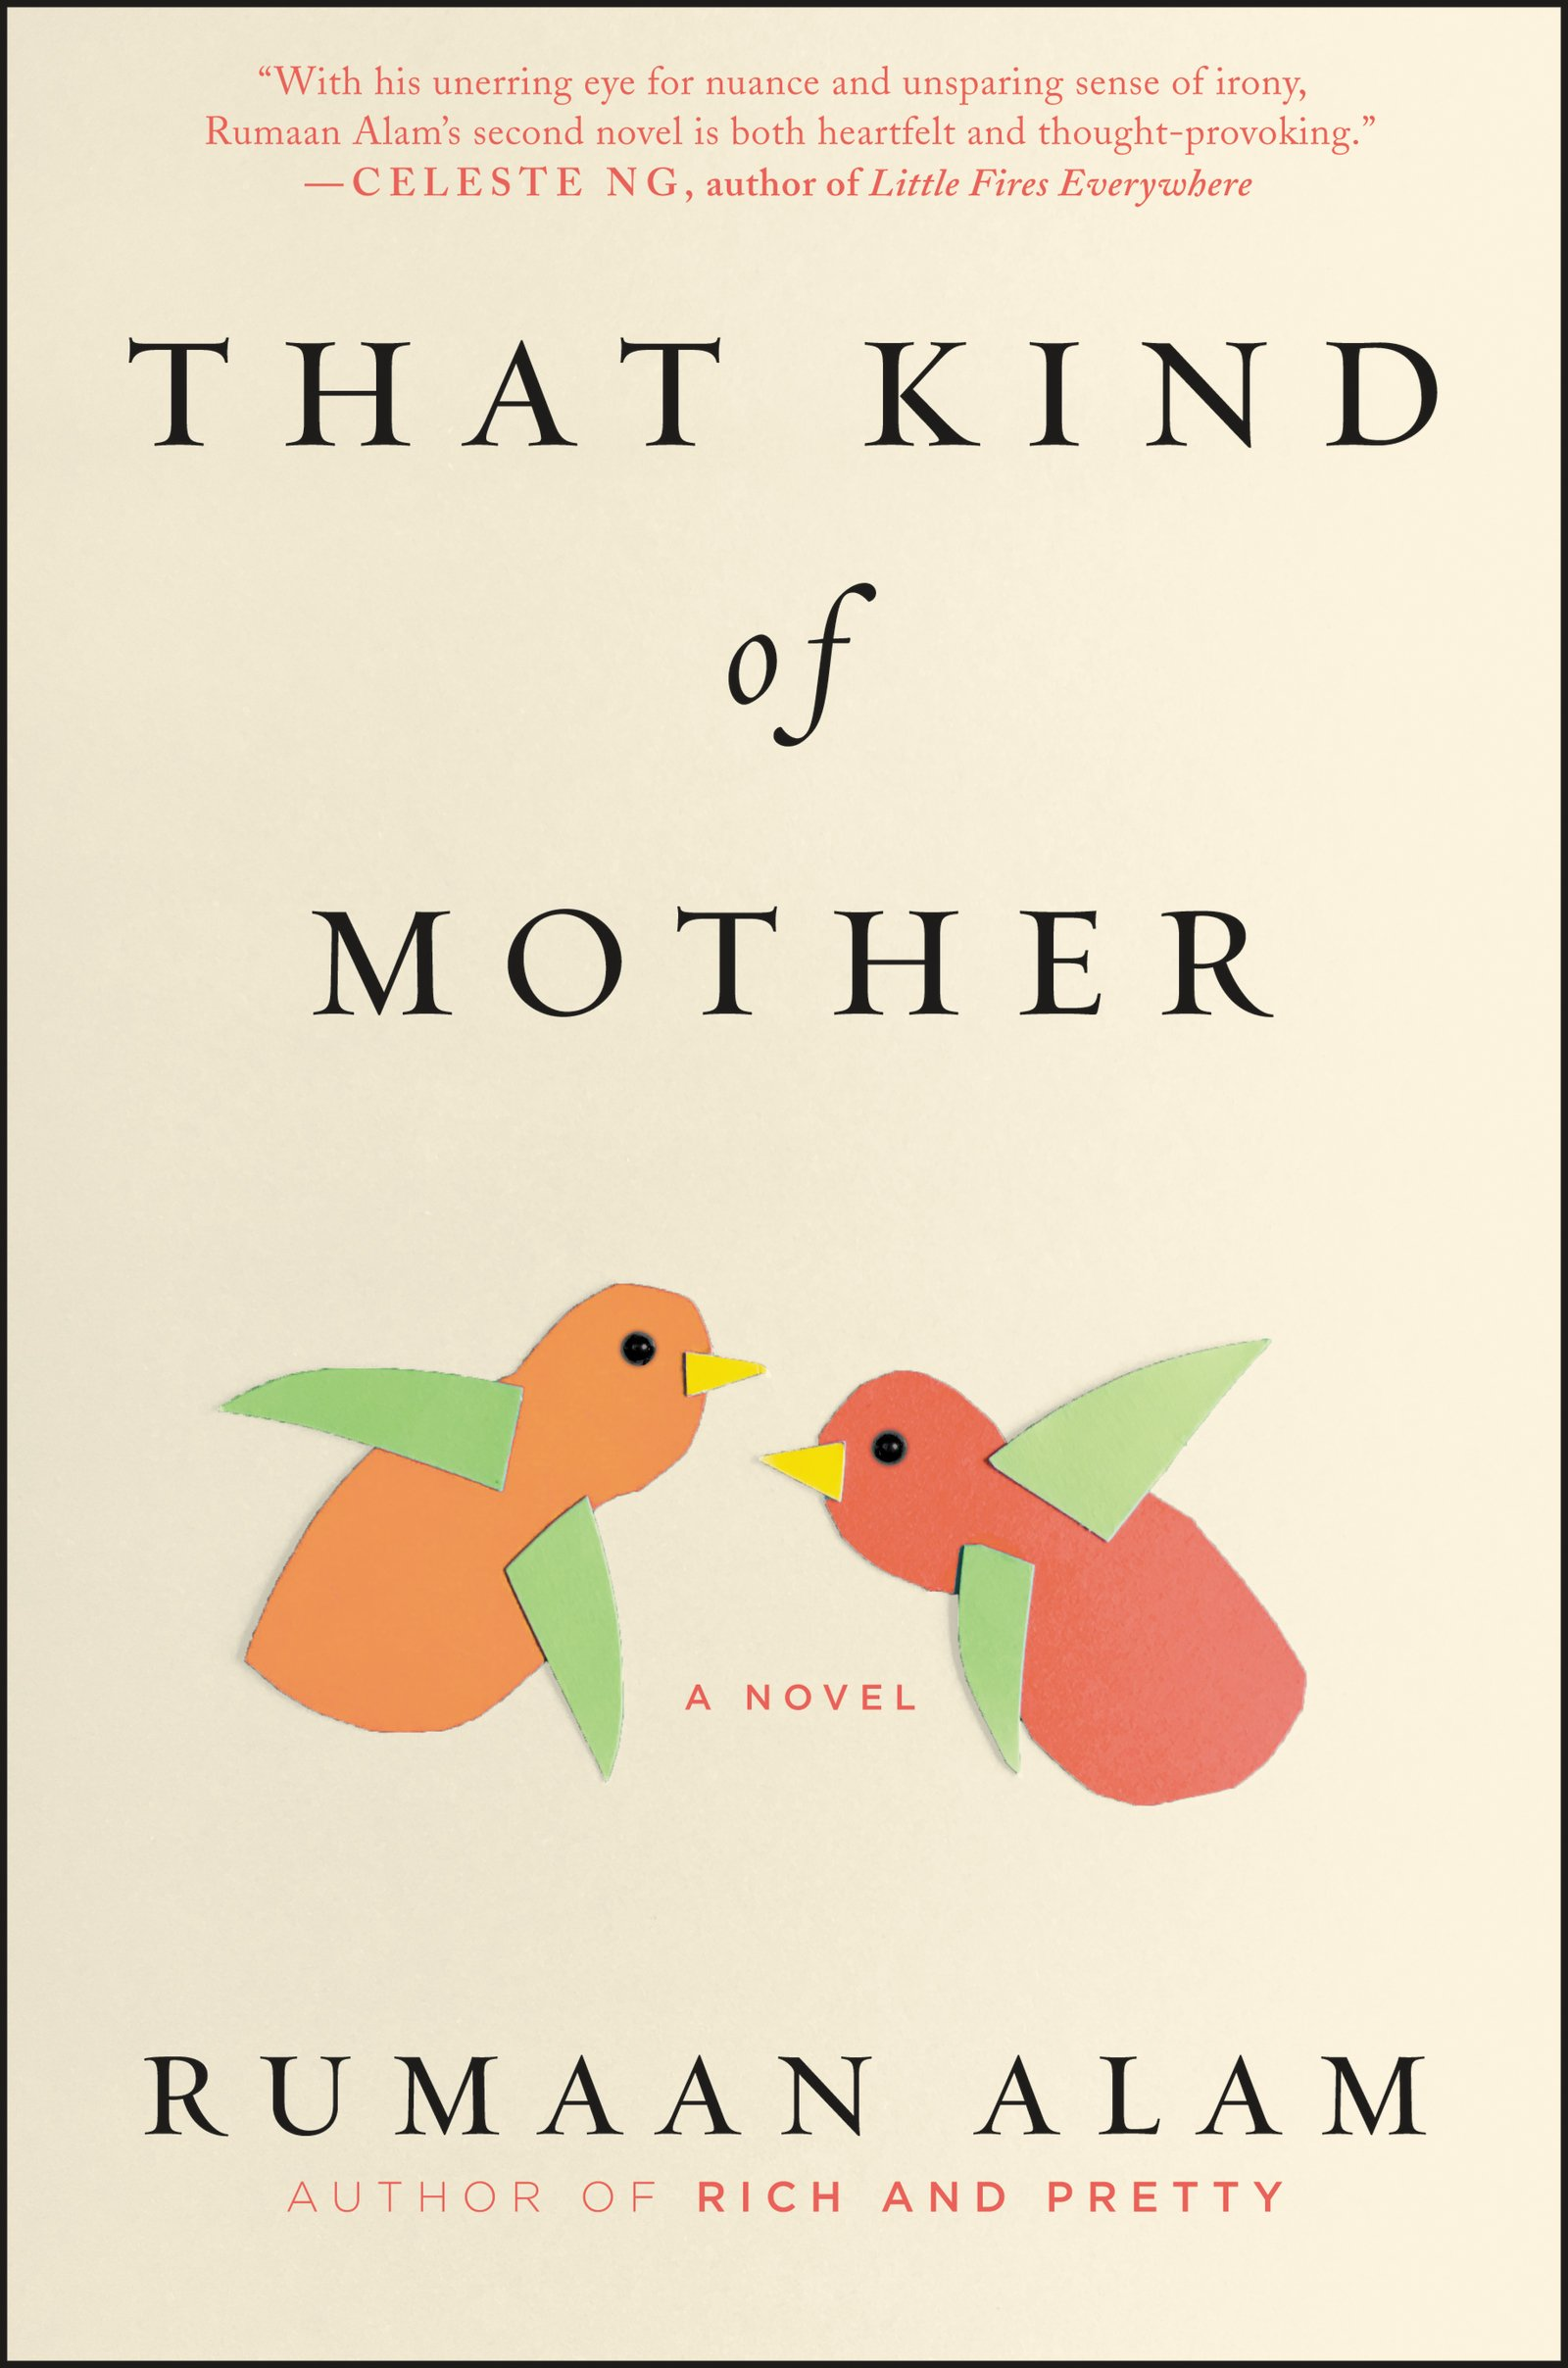 books to give your mom on mother's day